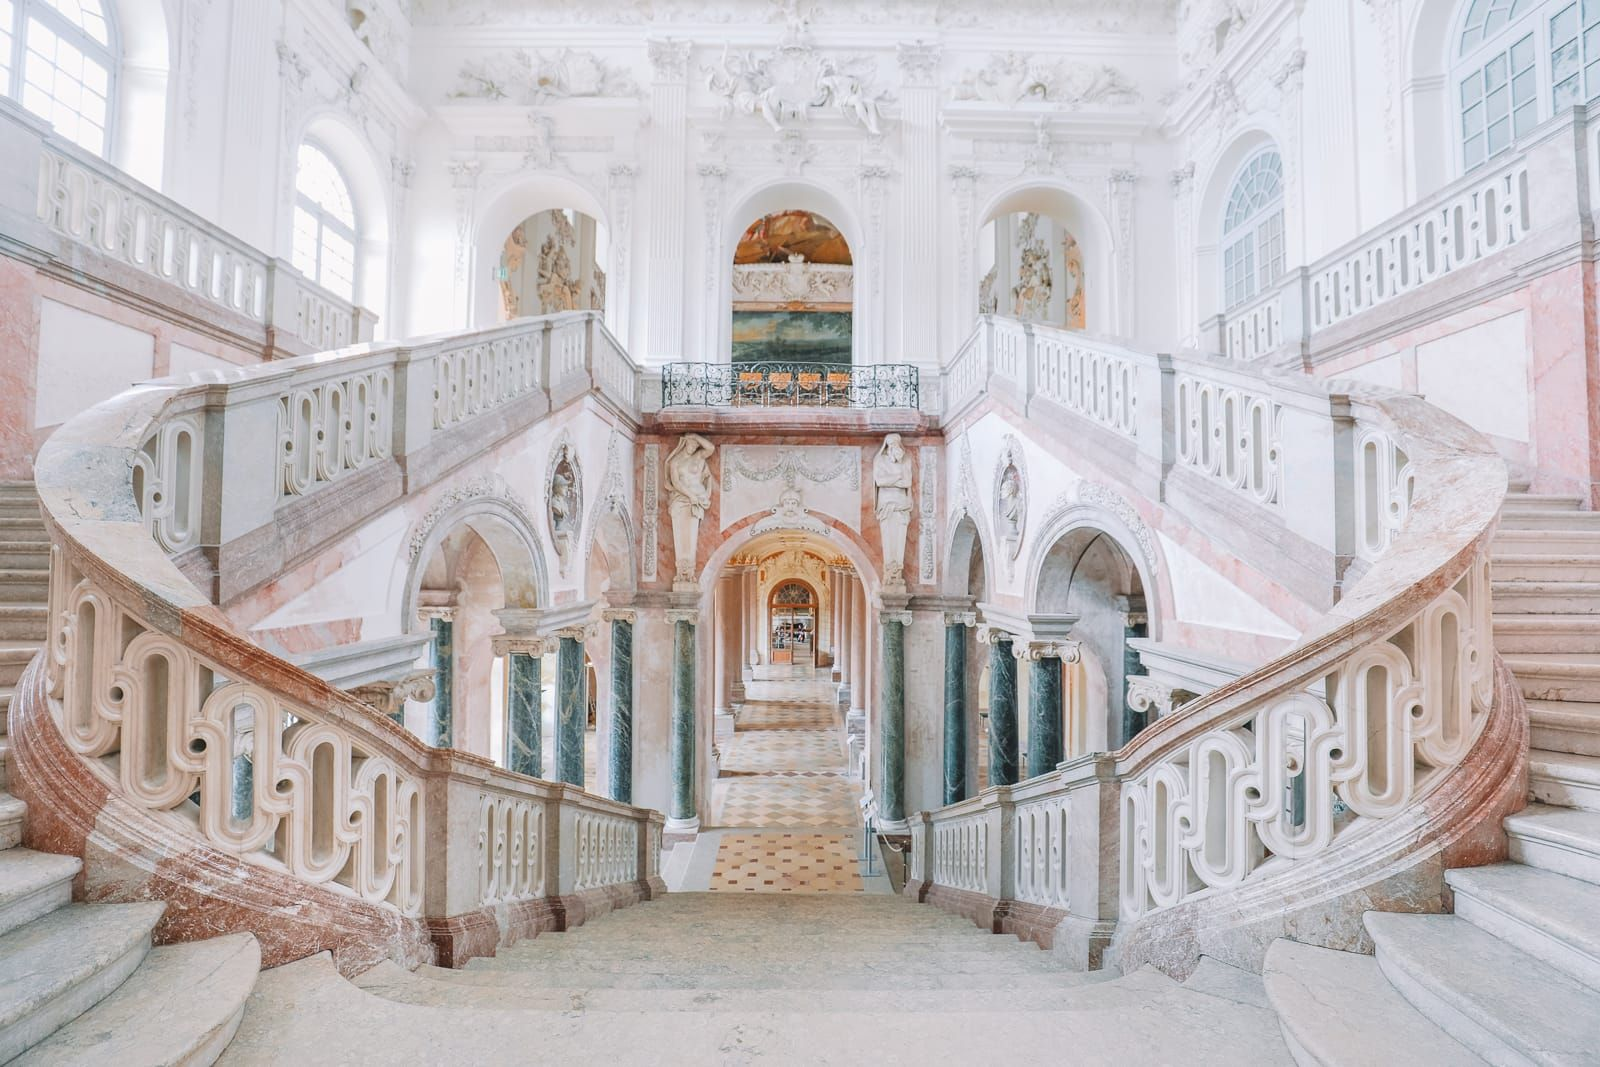 Schleissheim Palace The Amazing Palace In Germany You Ve Never